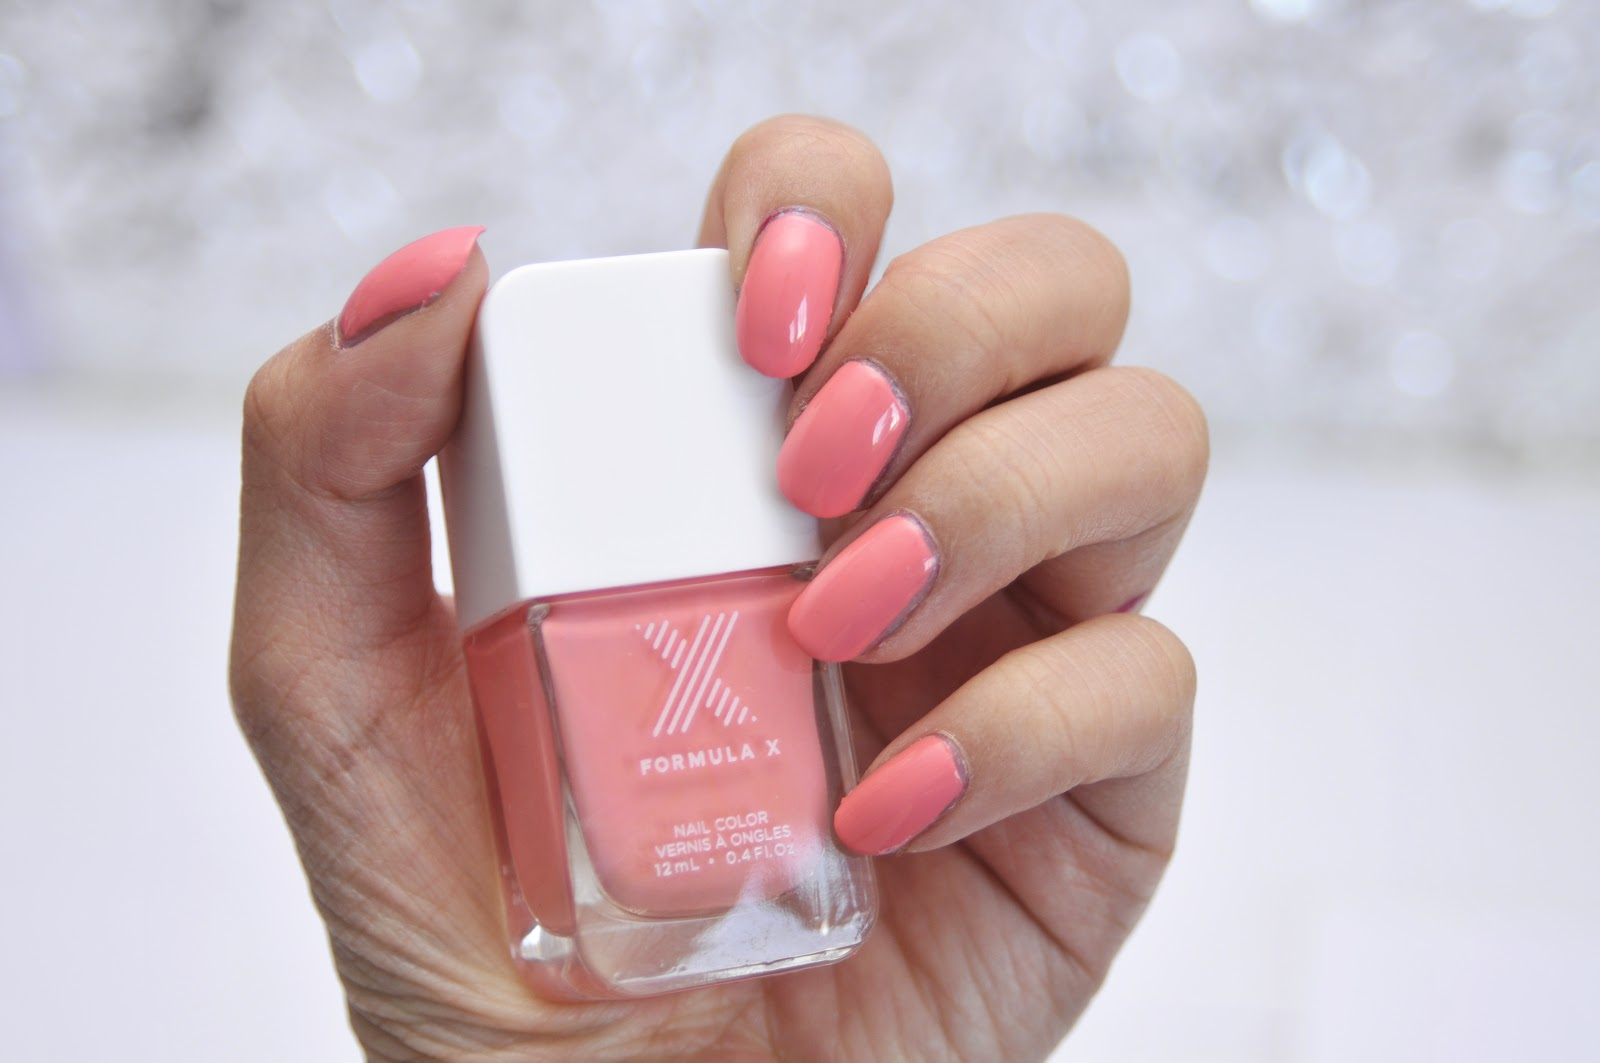 fun size beauty: Sephora Formula X Nail Polishes in TGIF and Decadent